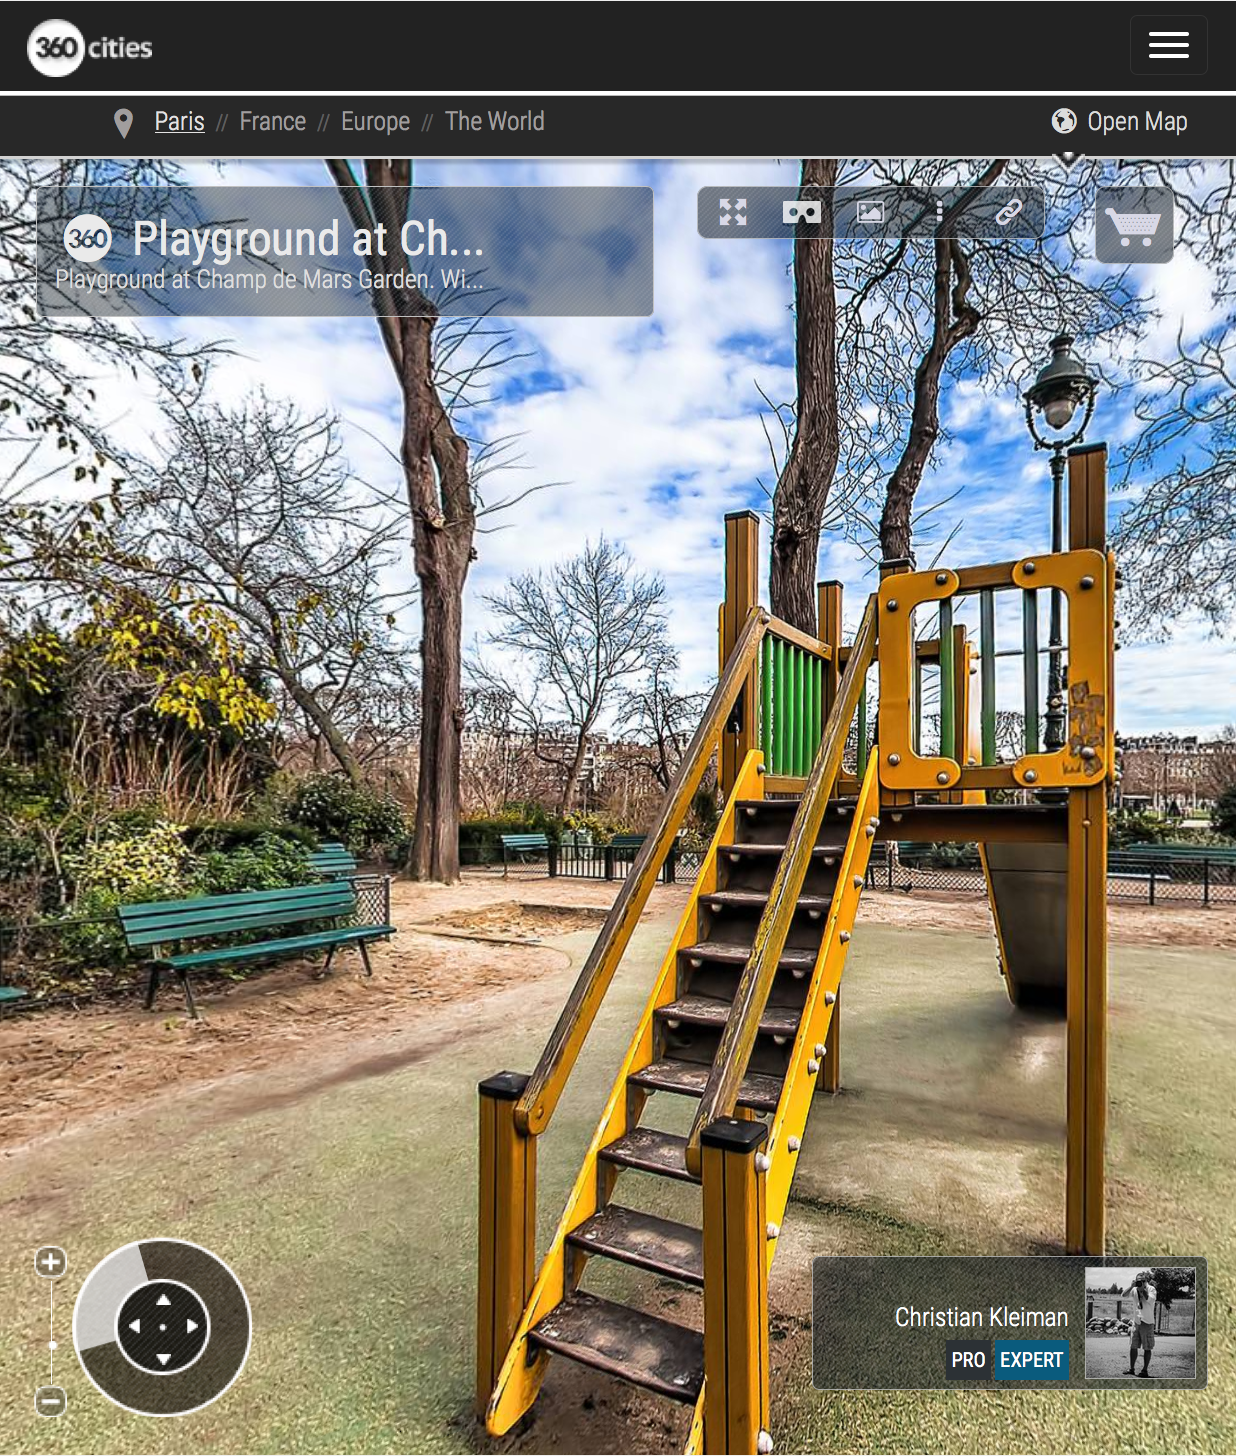 Playground in Champ de Mars Garden - Creative 360 VR Spherical Panoramic Photography from emblematic places in Paris by © Christian Kleiman